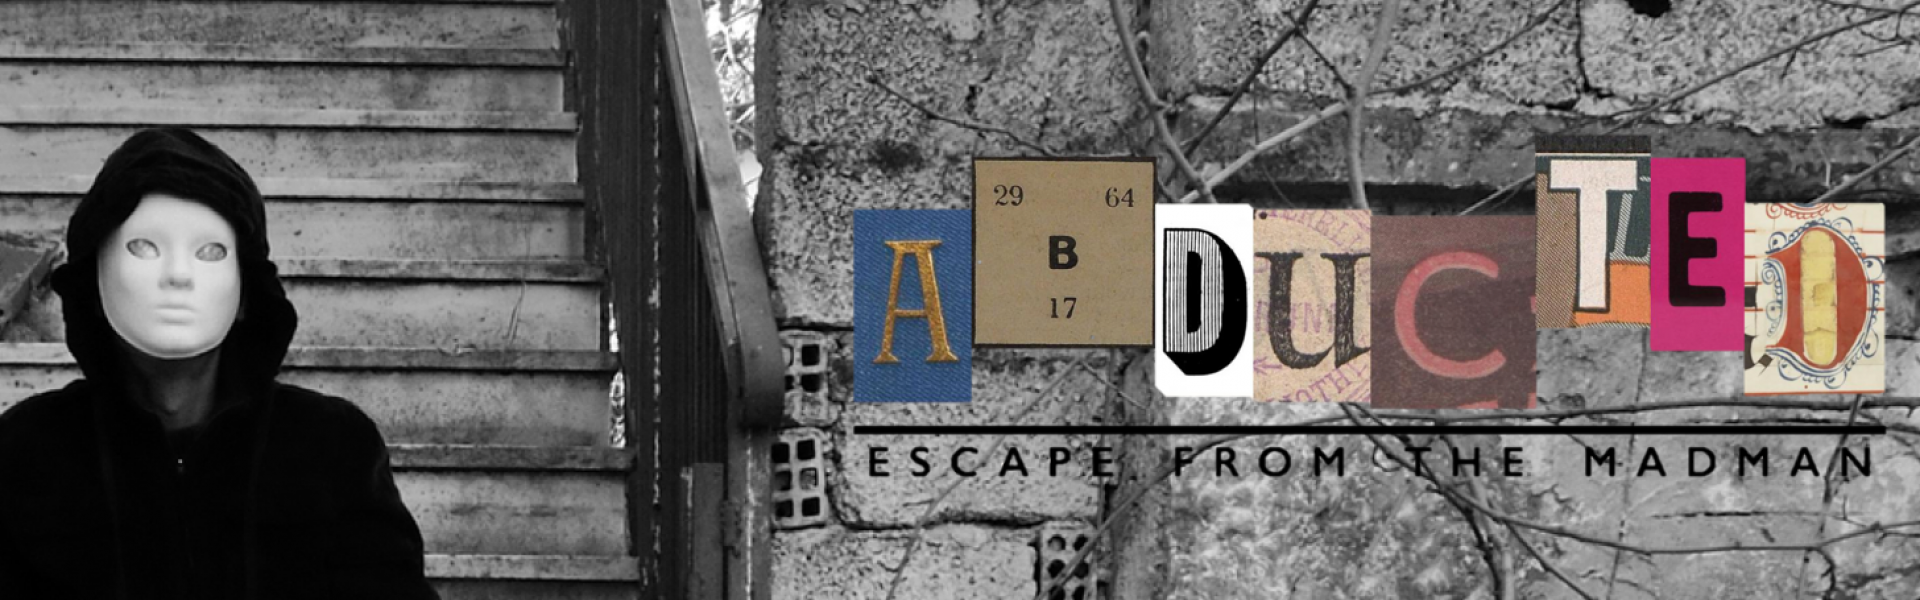 Abducted: Escape from the Madman